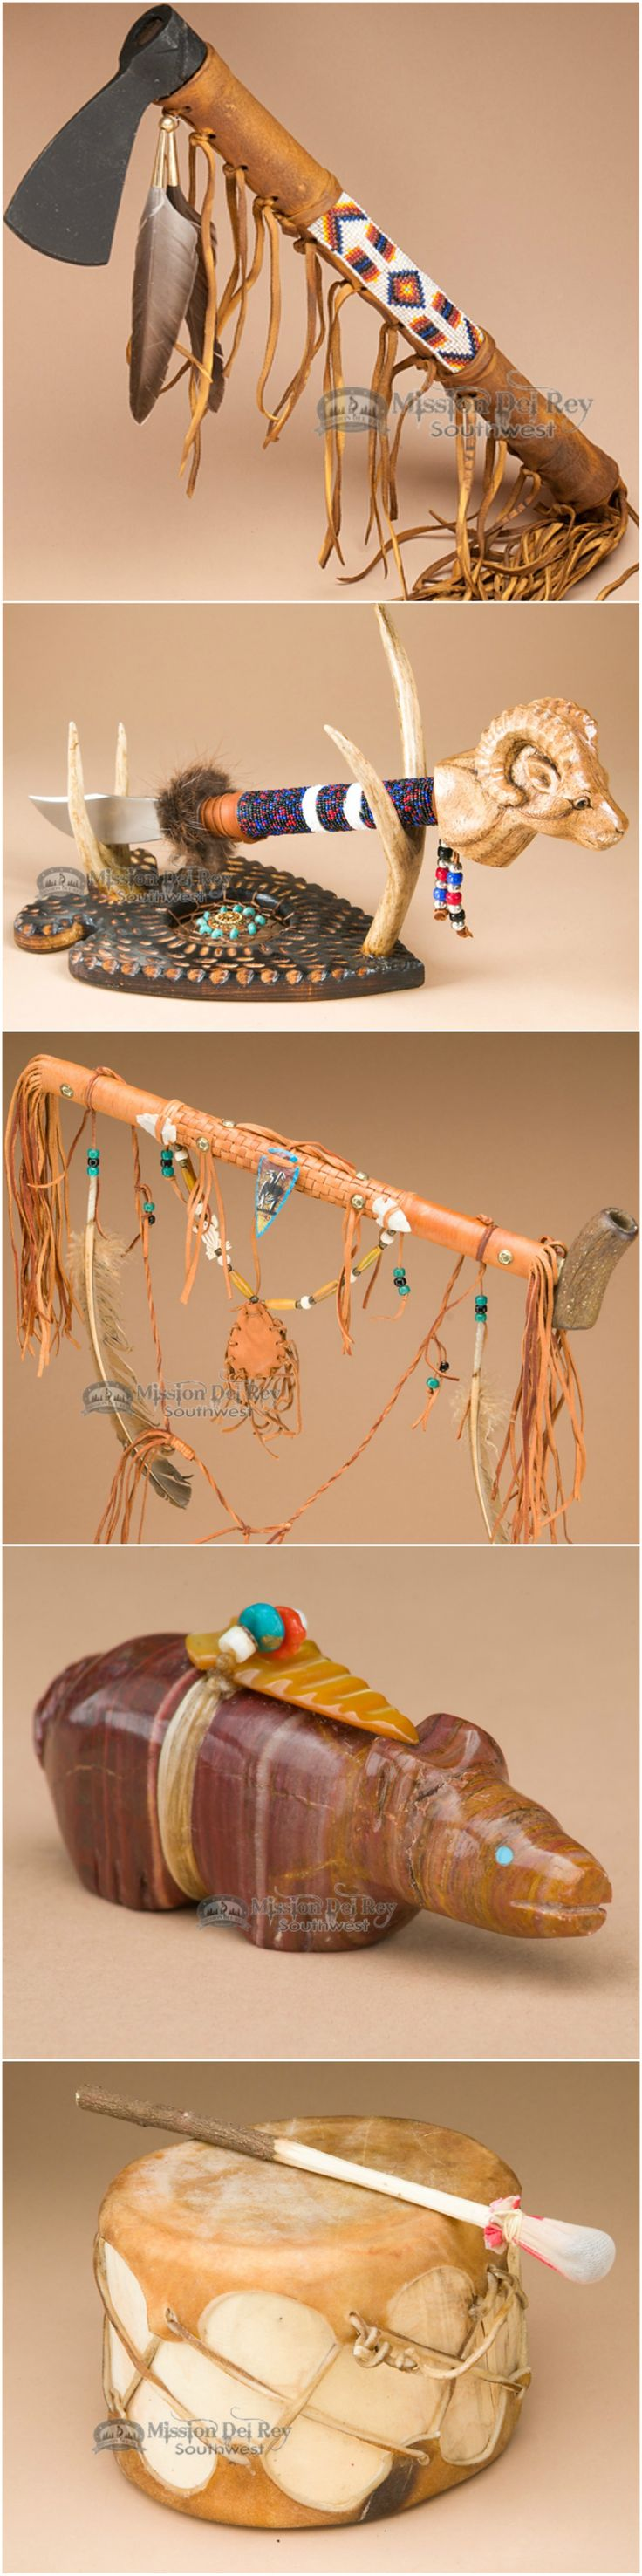 Best 25 native americans ideas on pinterest north for American indian decoration